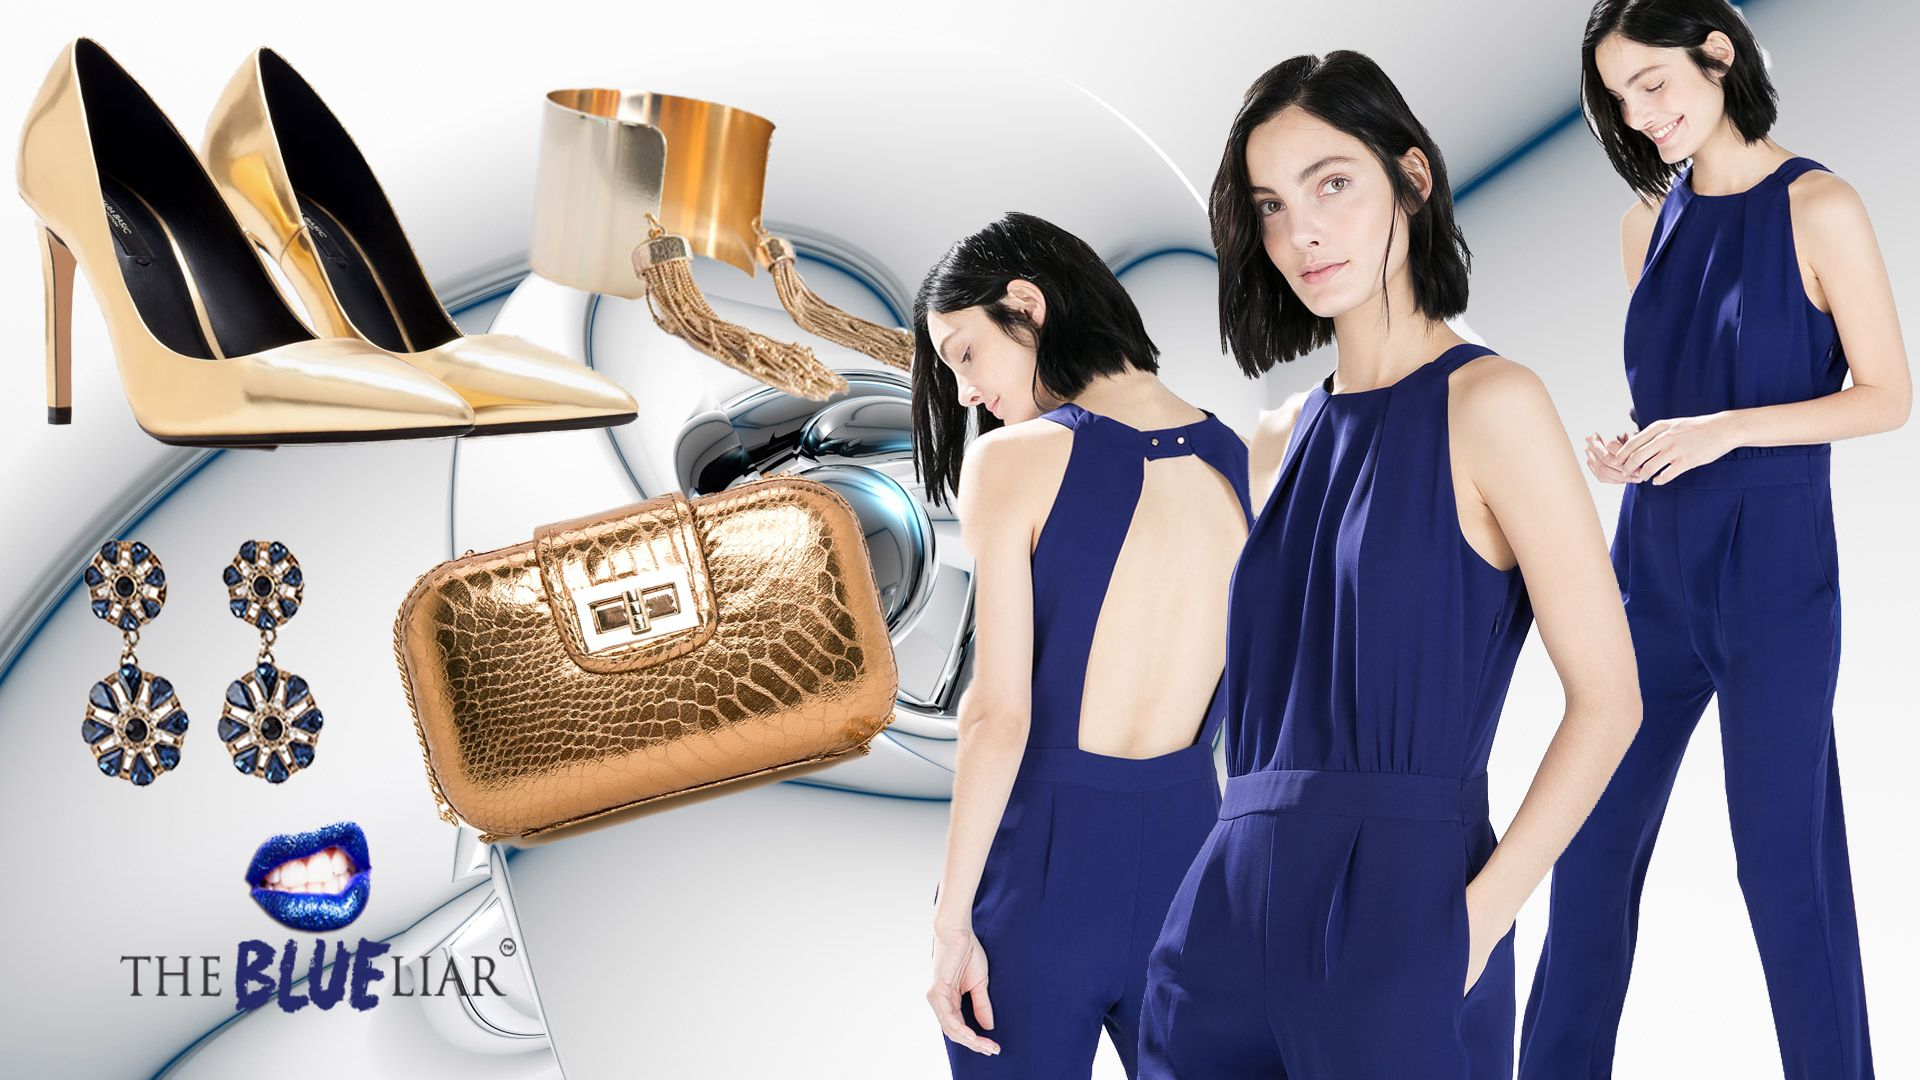 www.theblueliar.com #TheBlueLiar #fashion #inspiration #style #blogger #lifestyle #body #hair #beauty #outfit